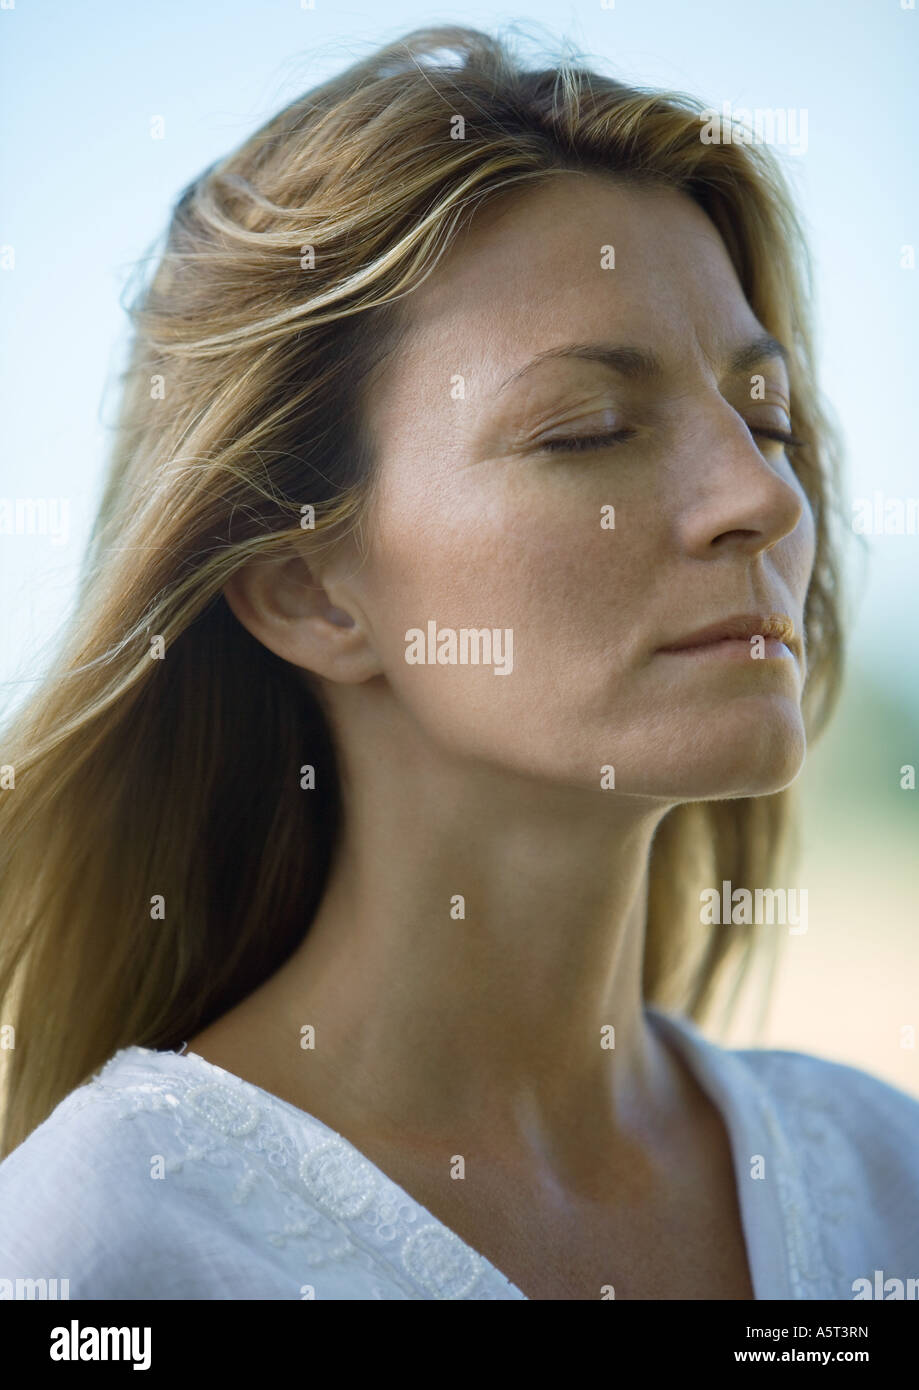 Woman, eyes closed, portrait - Stock Image